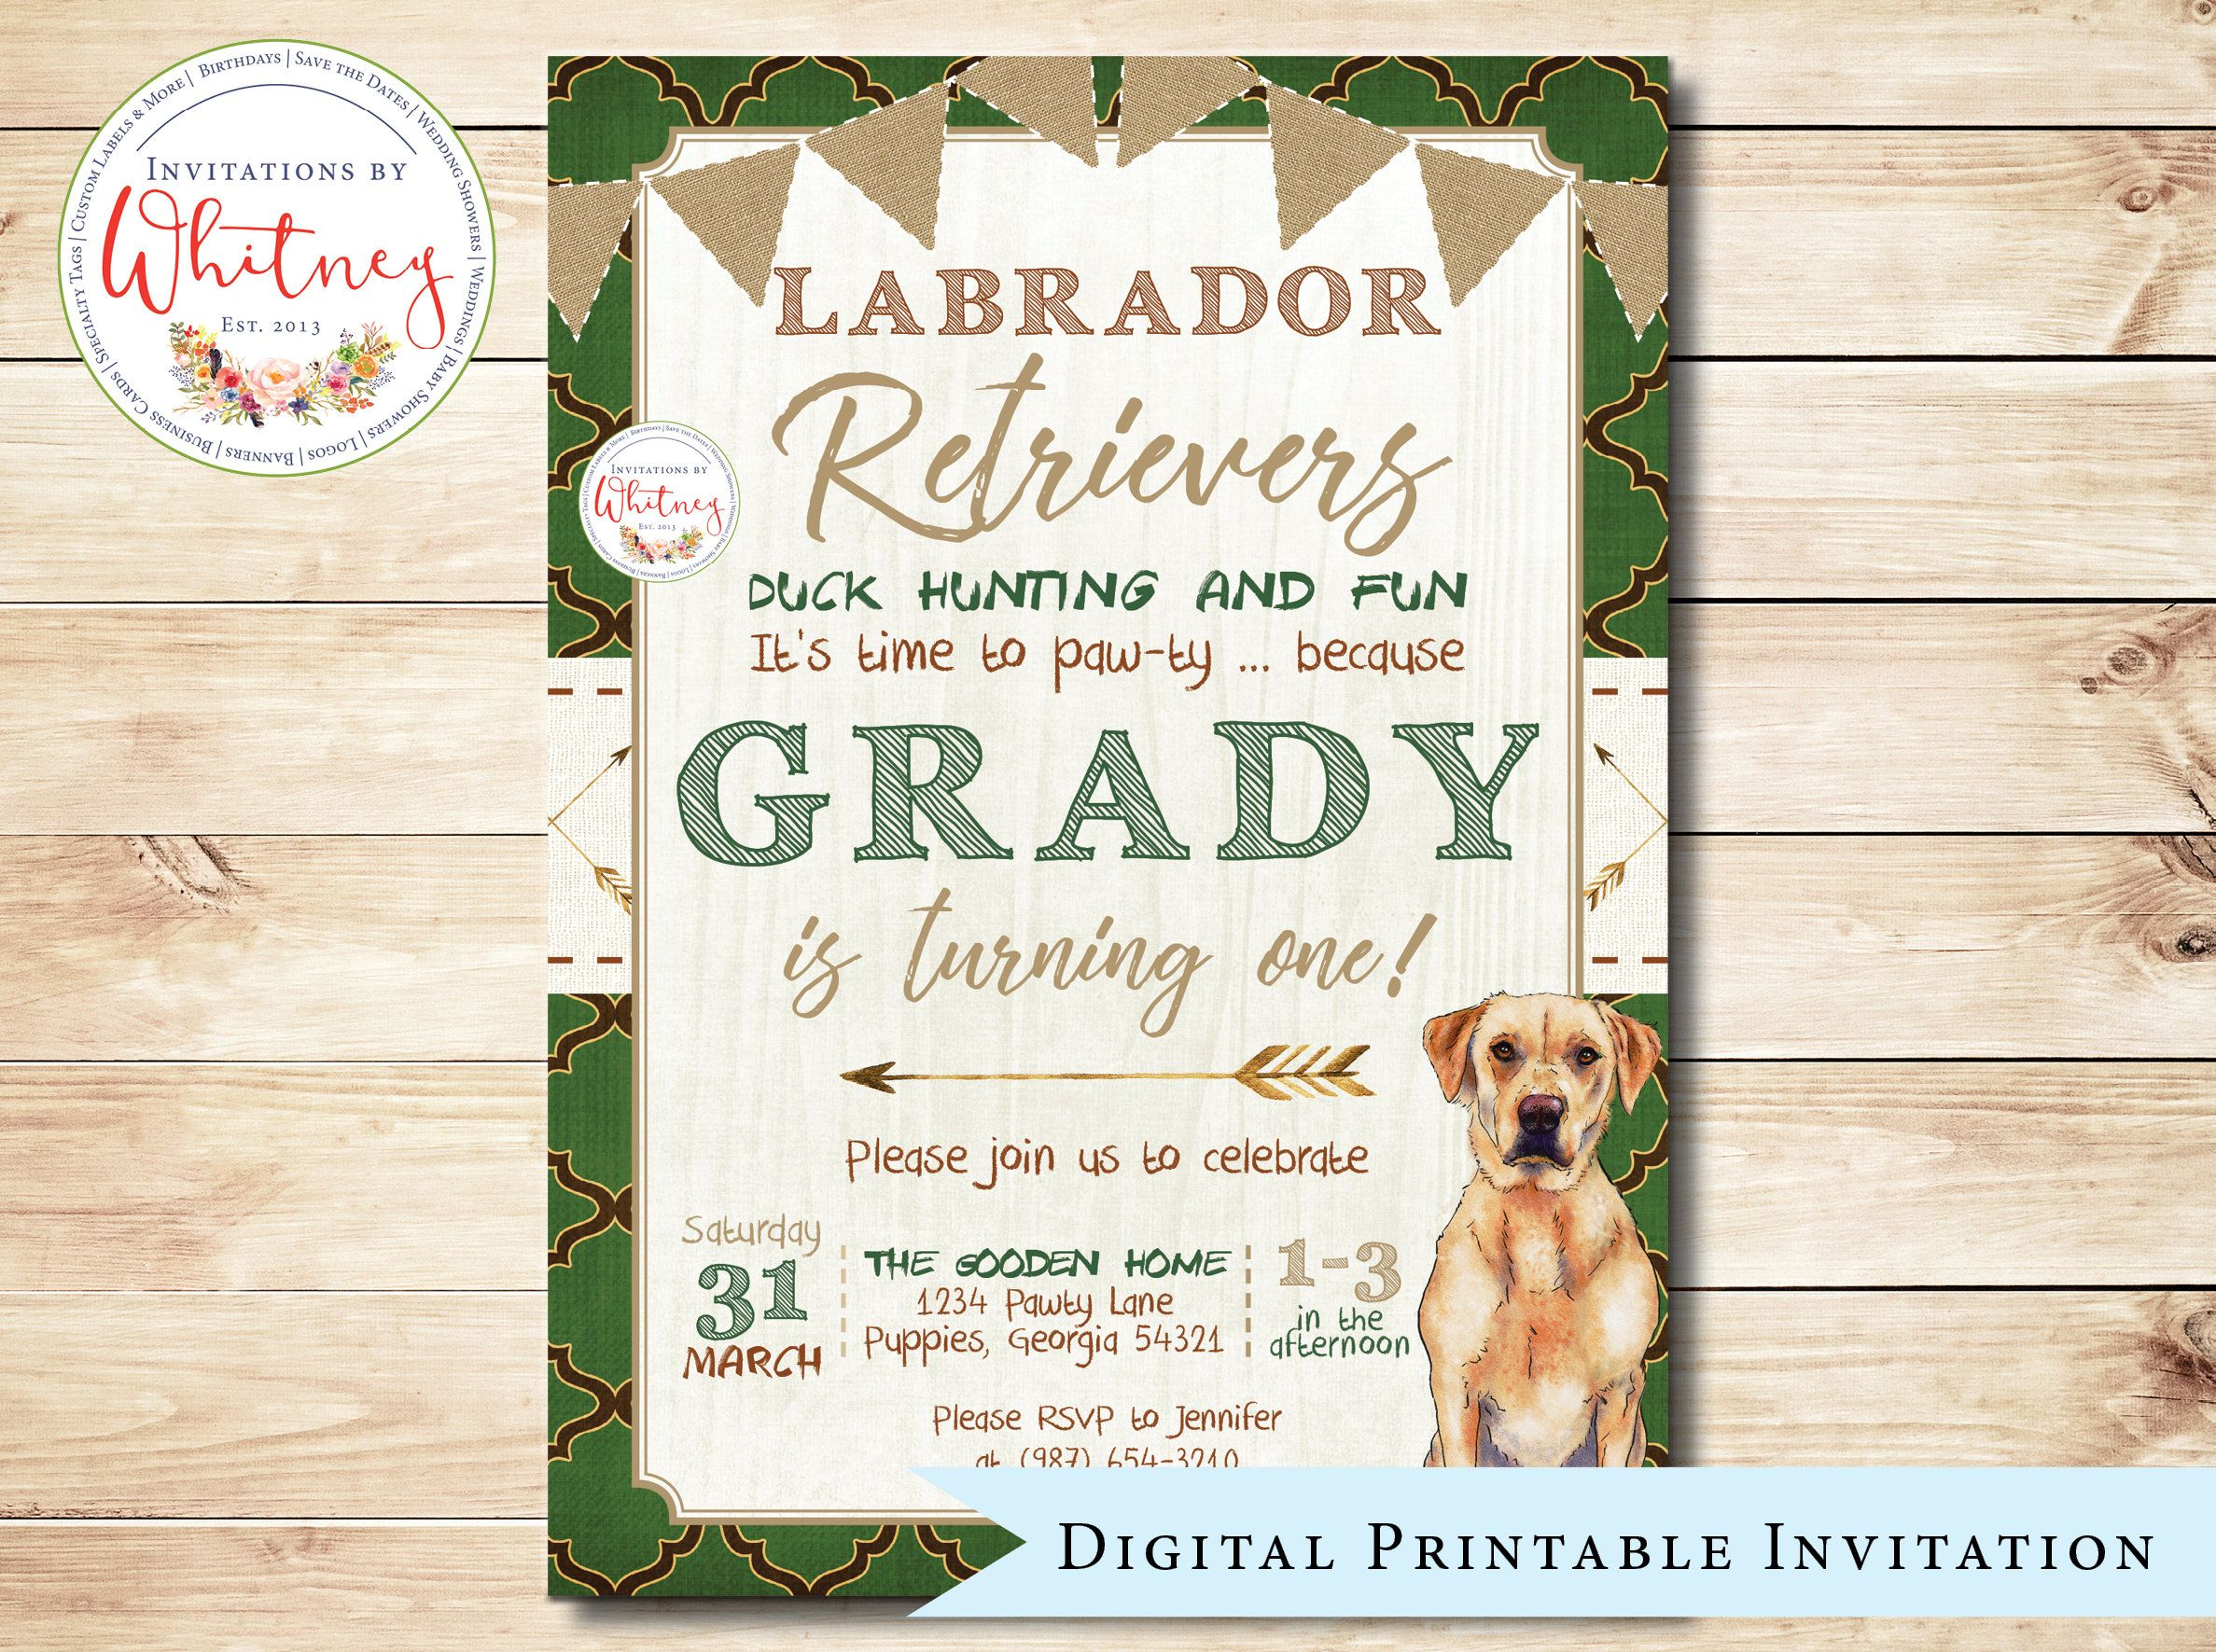 Golden Retriever Birthday Party Invitation Paw Ty Dog Themed Digital Printable Design By WhitneyYarberDesigns On Etsy